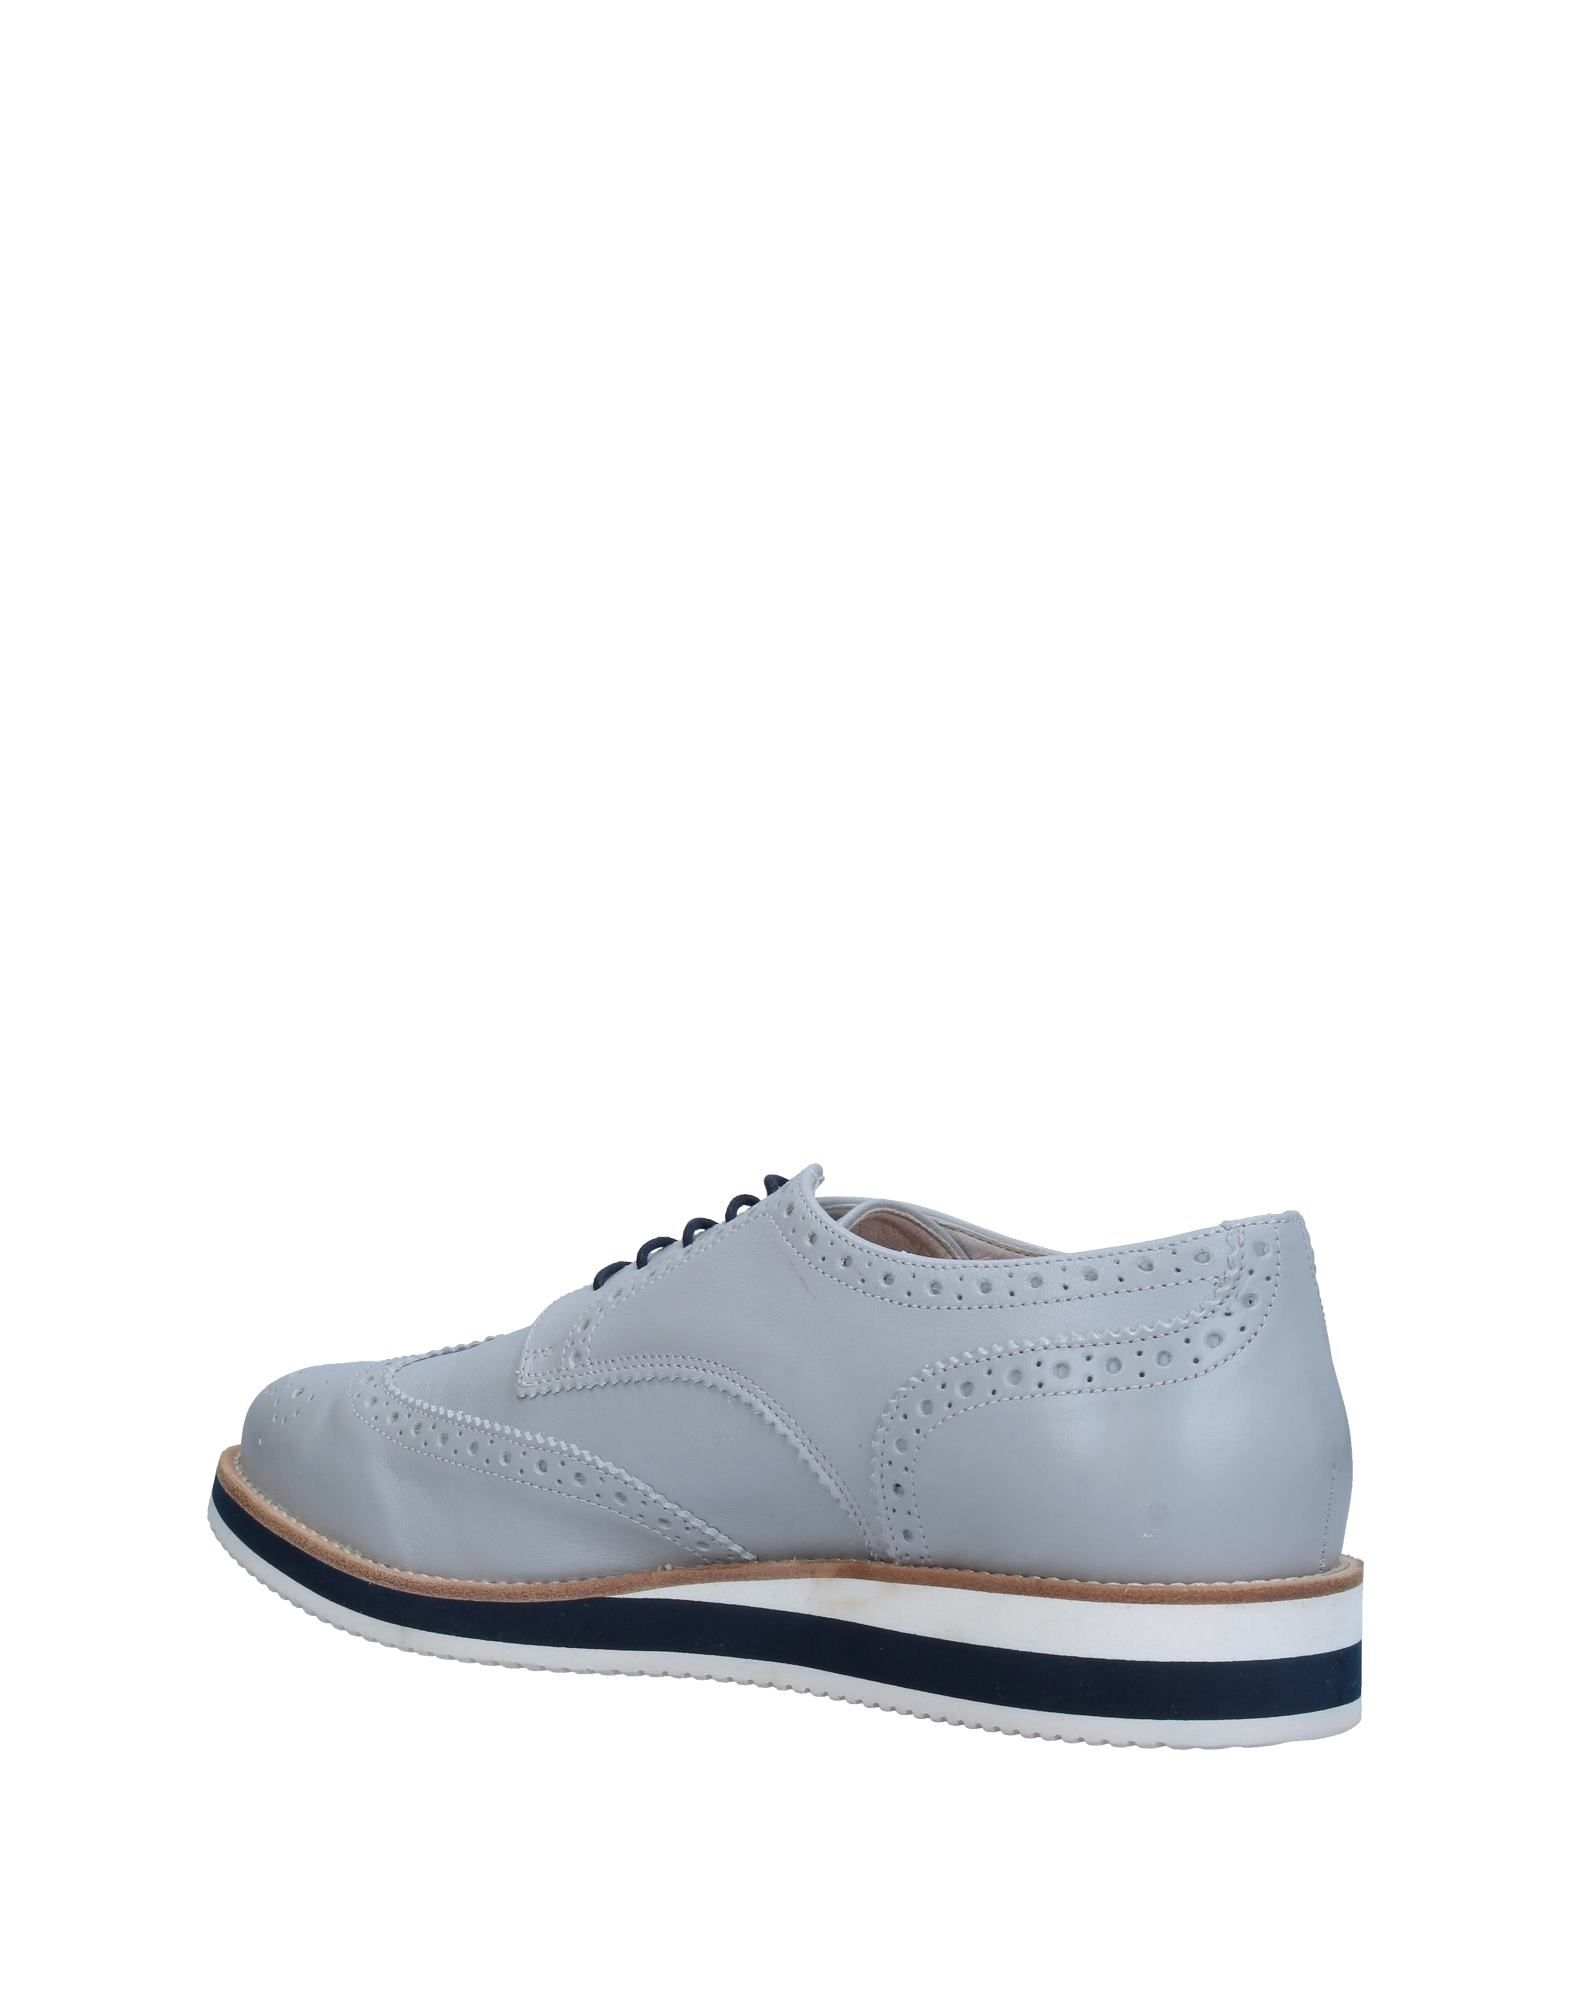 CHAUSSURES - Chaussures à lacetsThe Willa 5scnDDN